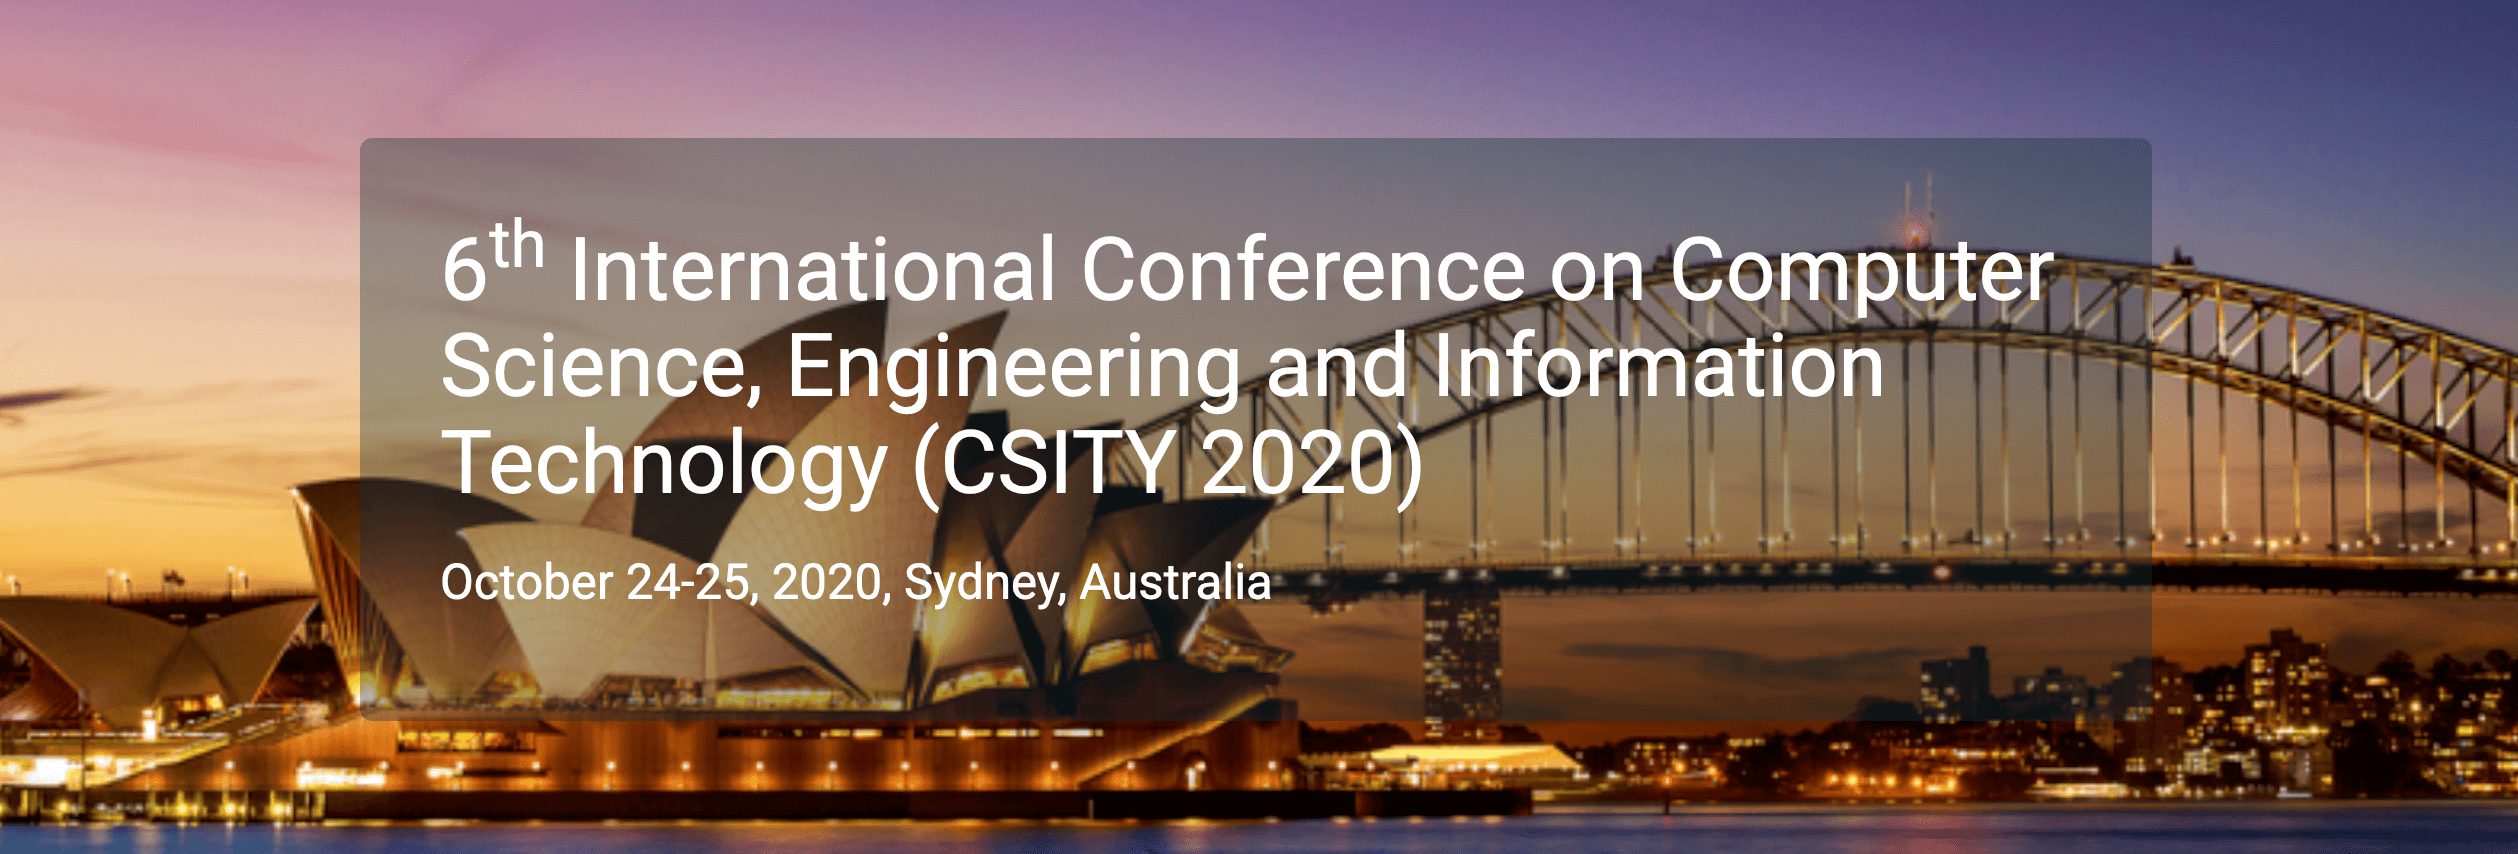 6th International Conference on Computer Science, Engineering and Information Technology (CSITY 2020)